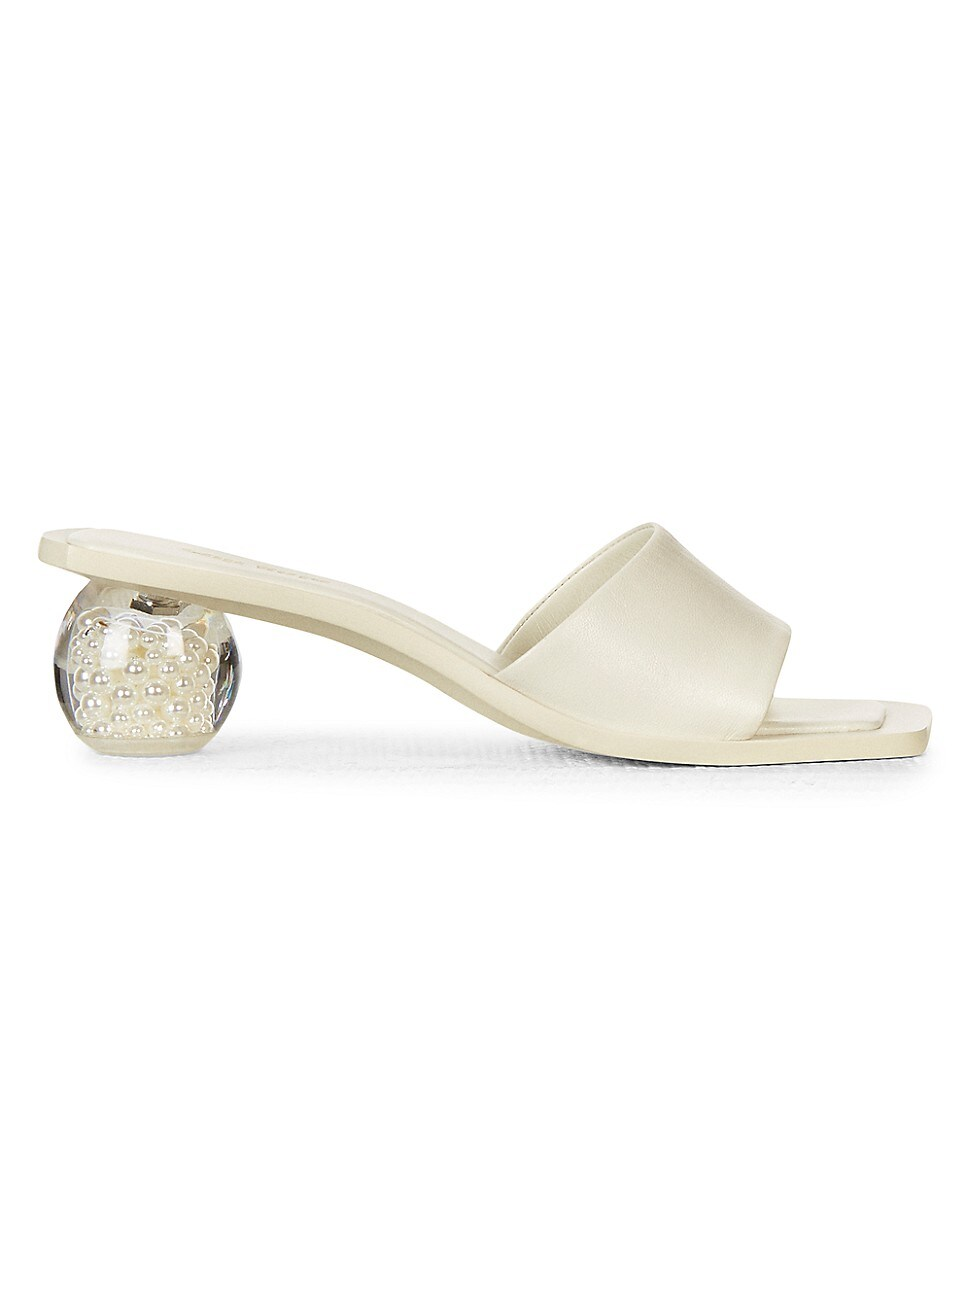 Cult Gaia Leathers WOMEN'S TAO FAUX PEARL BAUBLE-HEEL LEATHER MULES